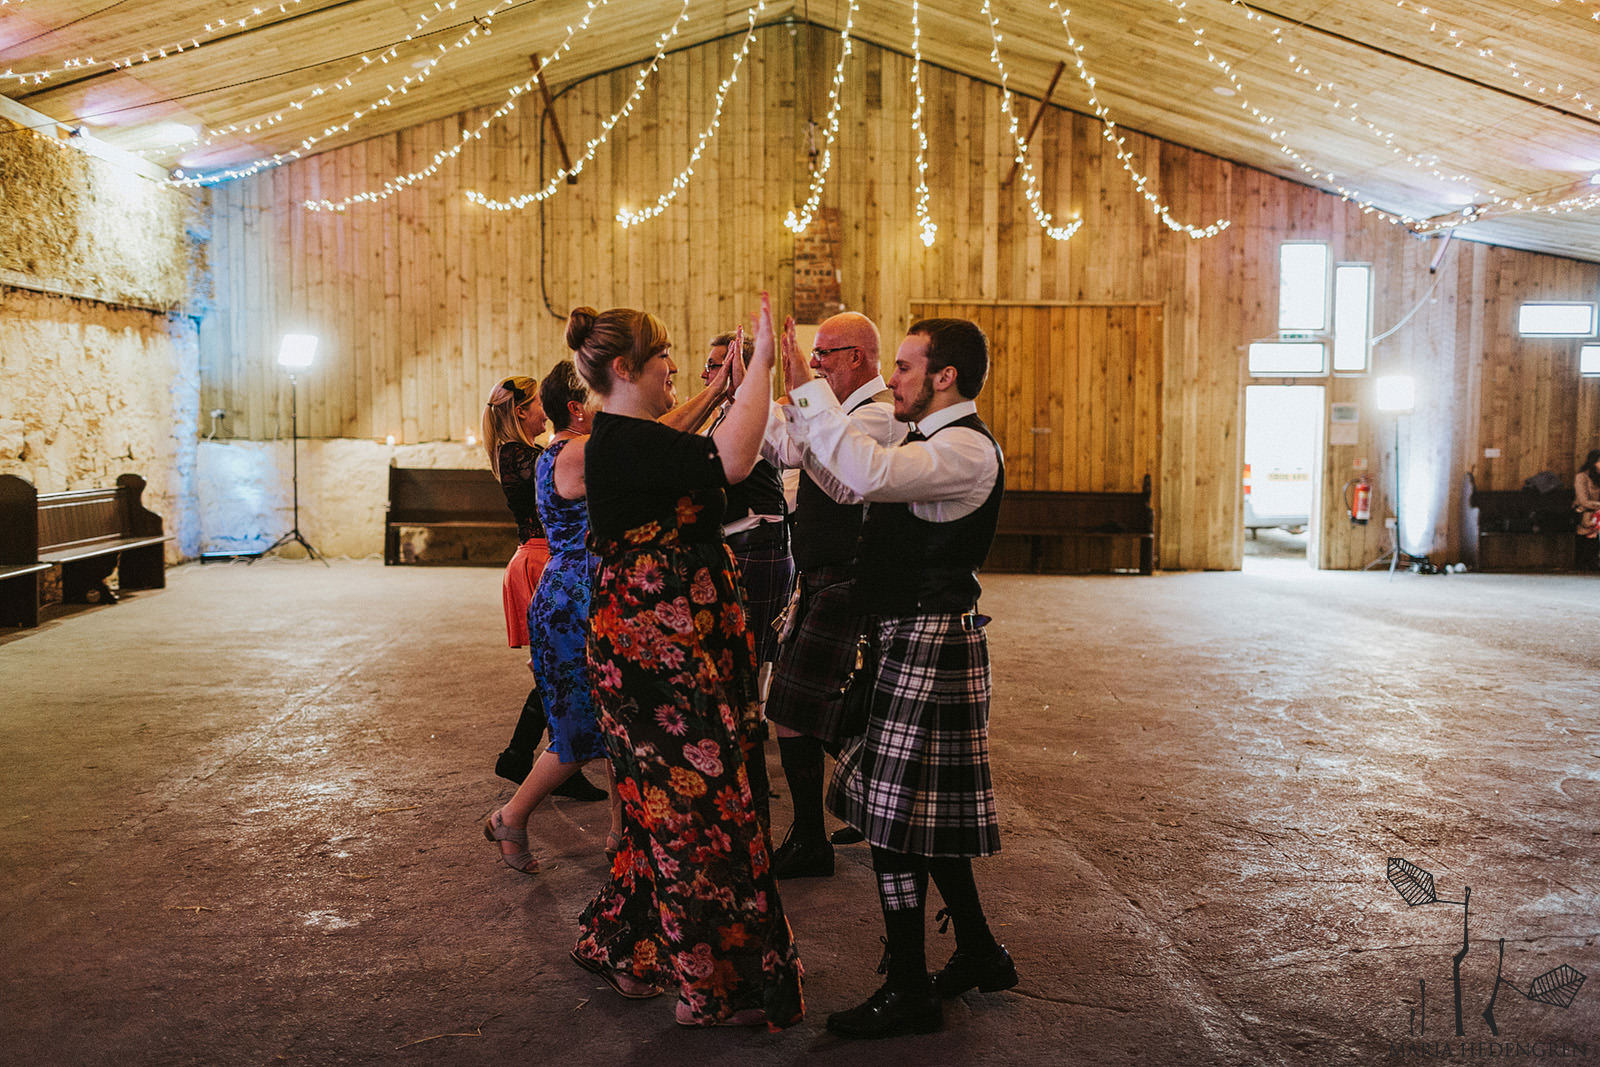 Ceilidh dances